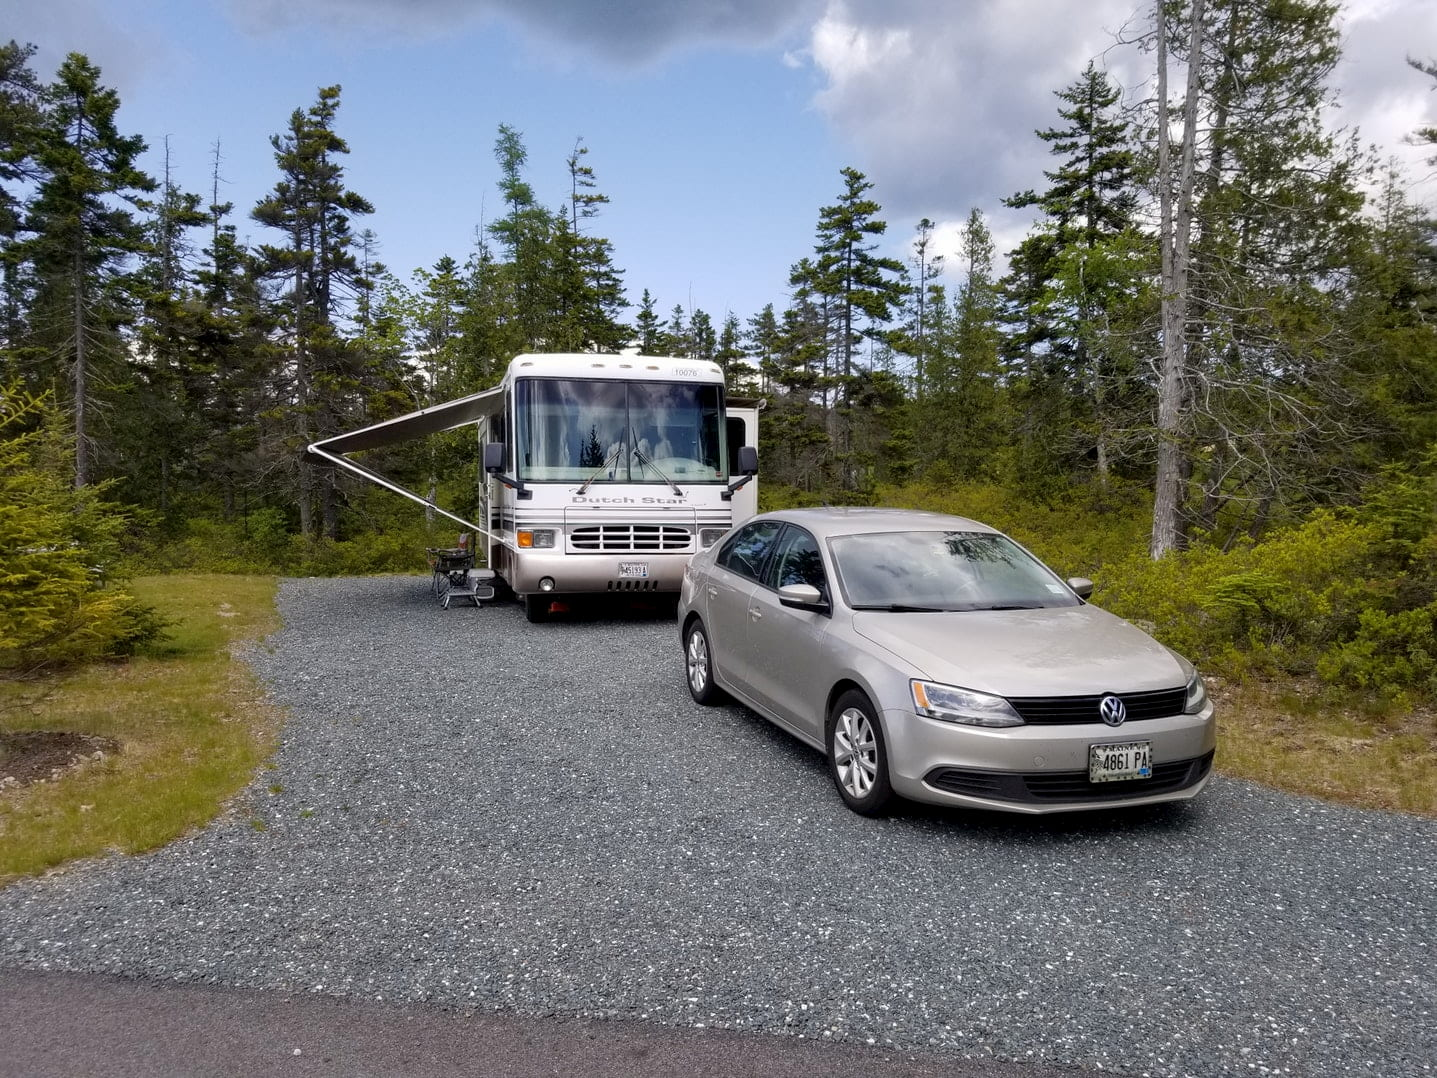 R.V. and car parked in gravel campsite beside pine trees.